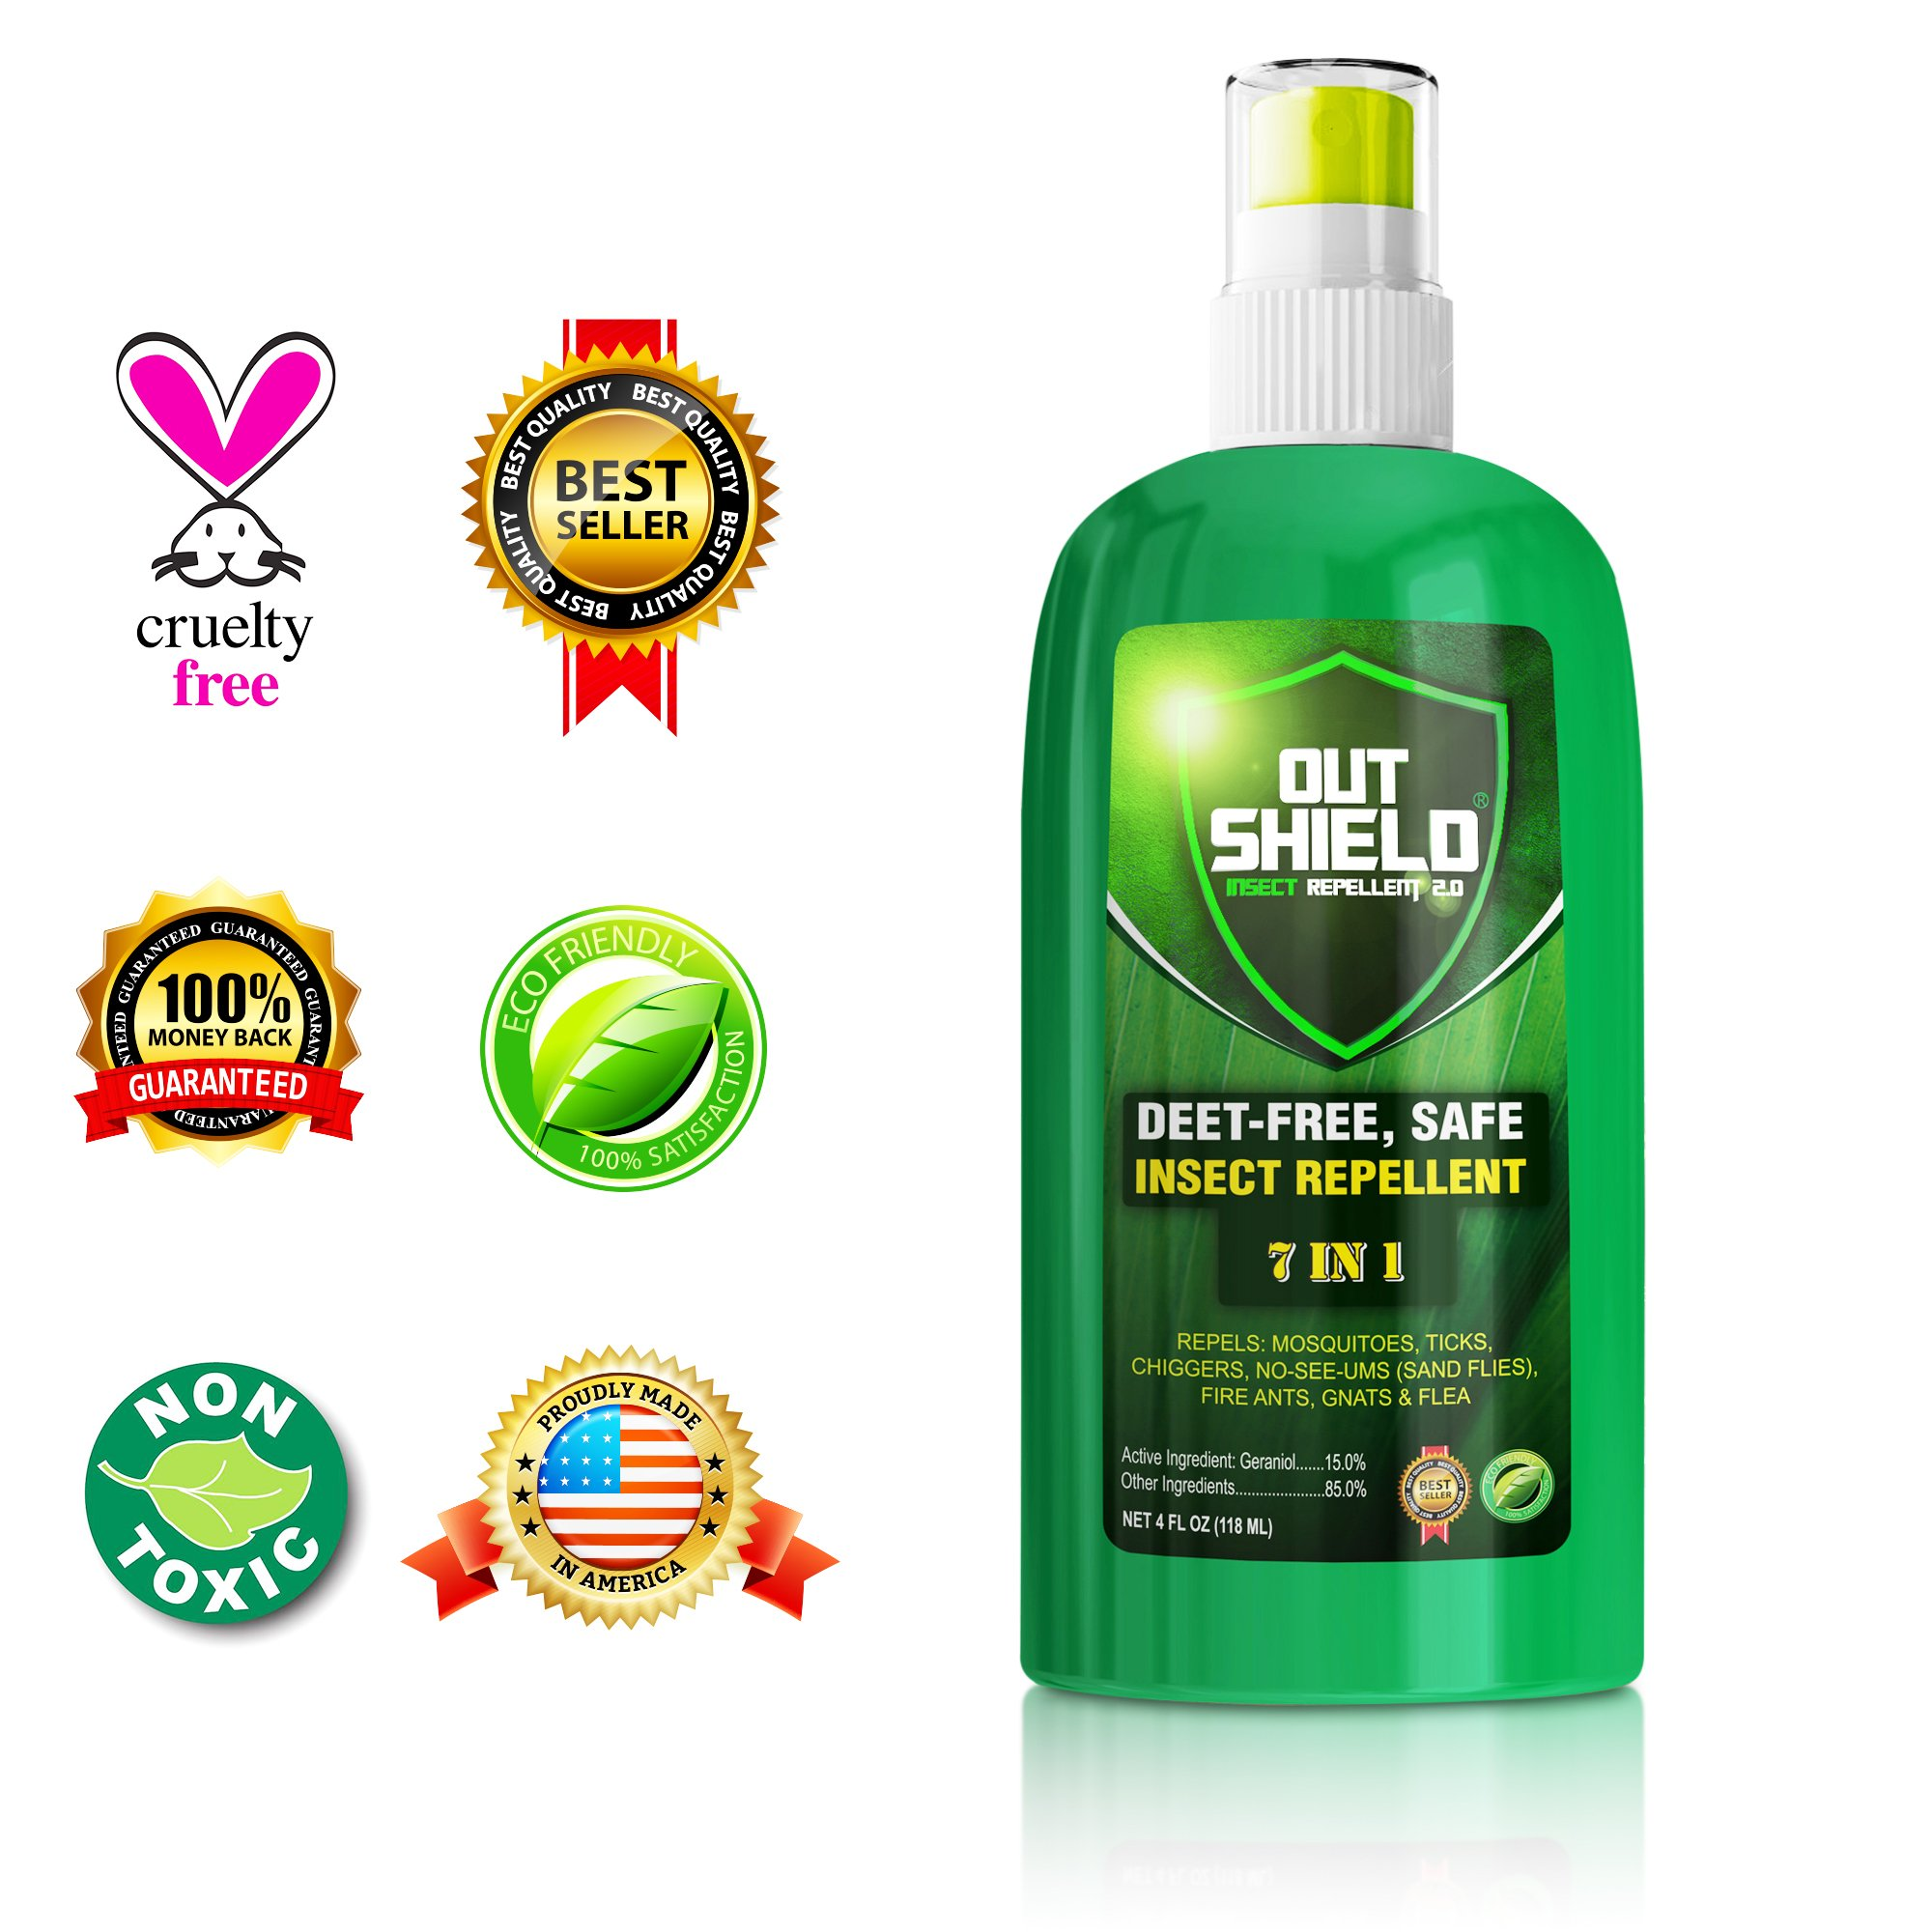 Insect Repellent Mosquito Repel Bugs Off Spray Protection - 7 In 1 Natural De.. 14